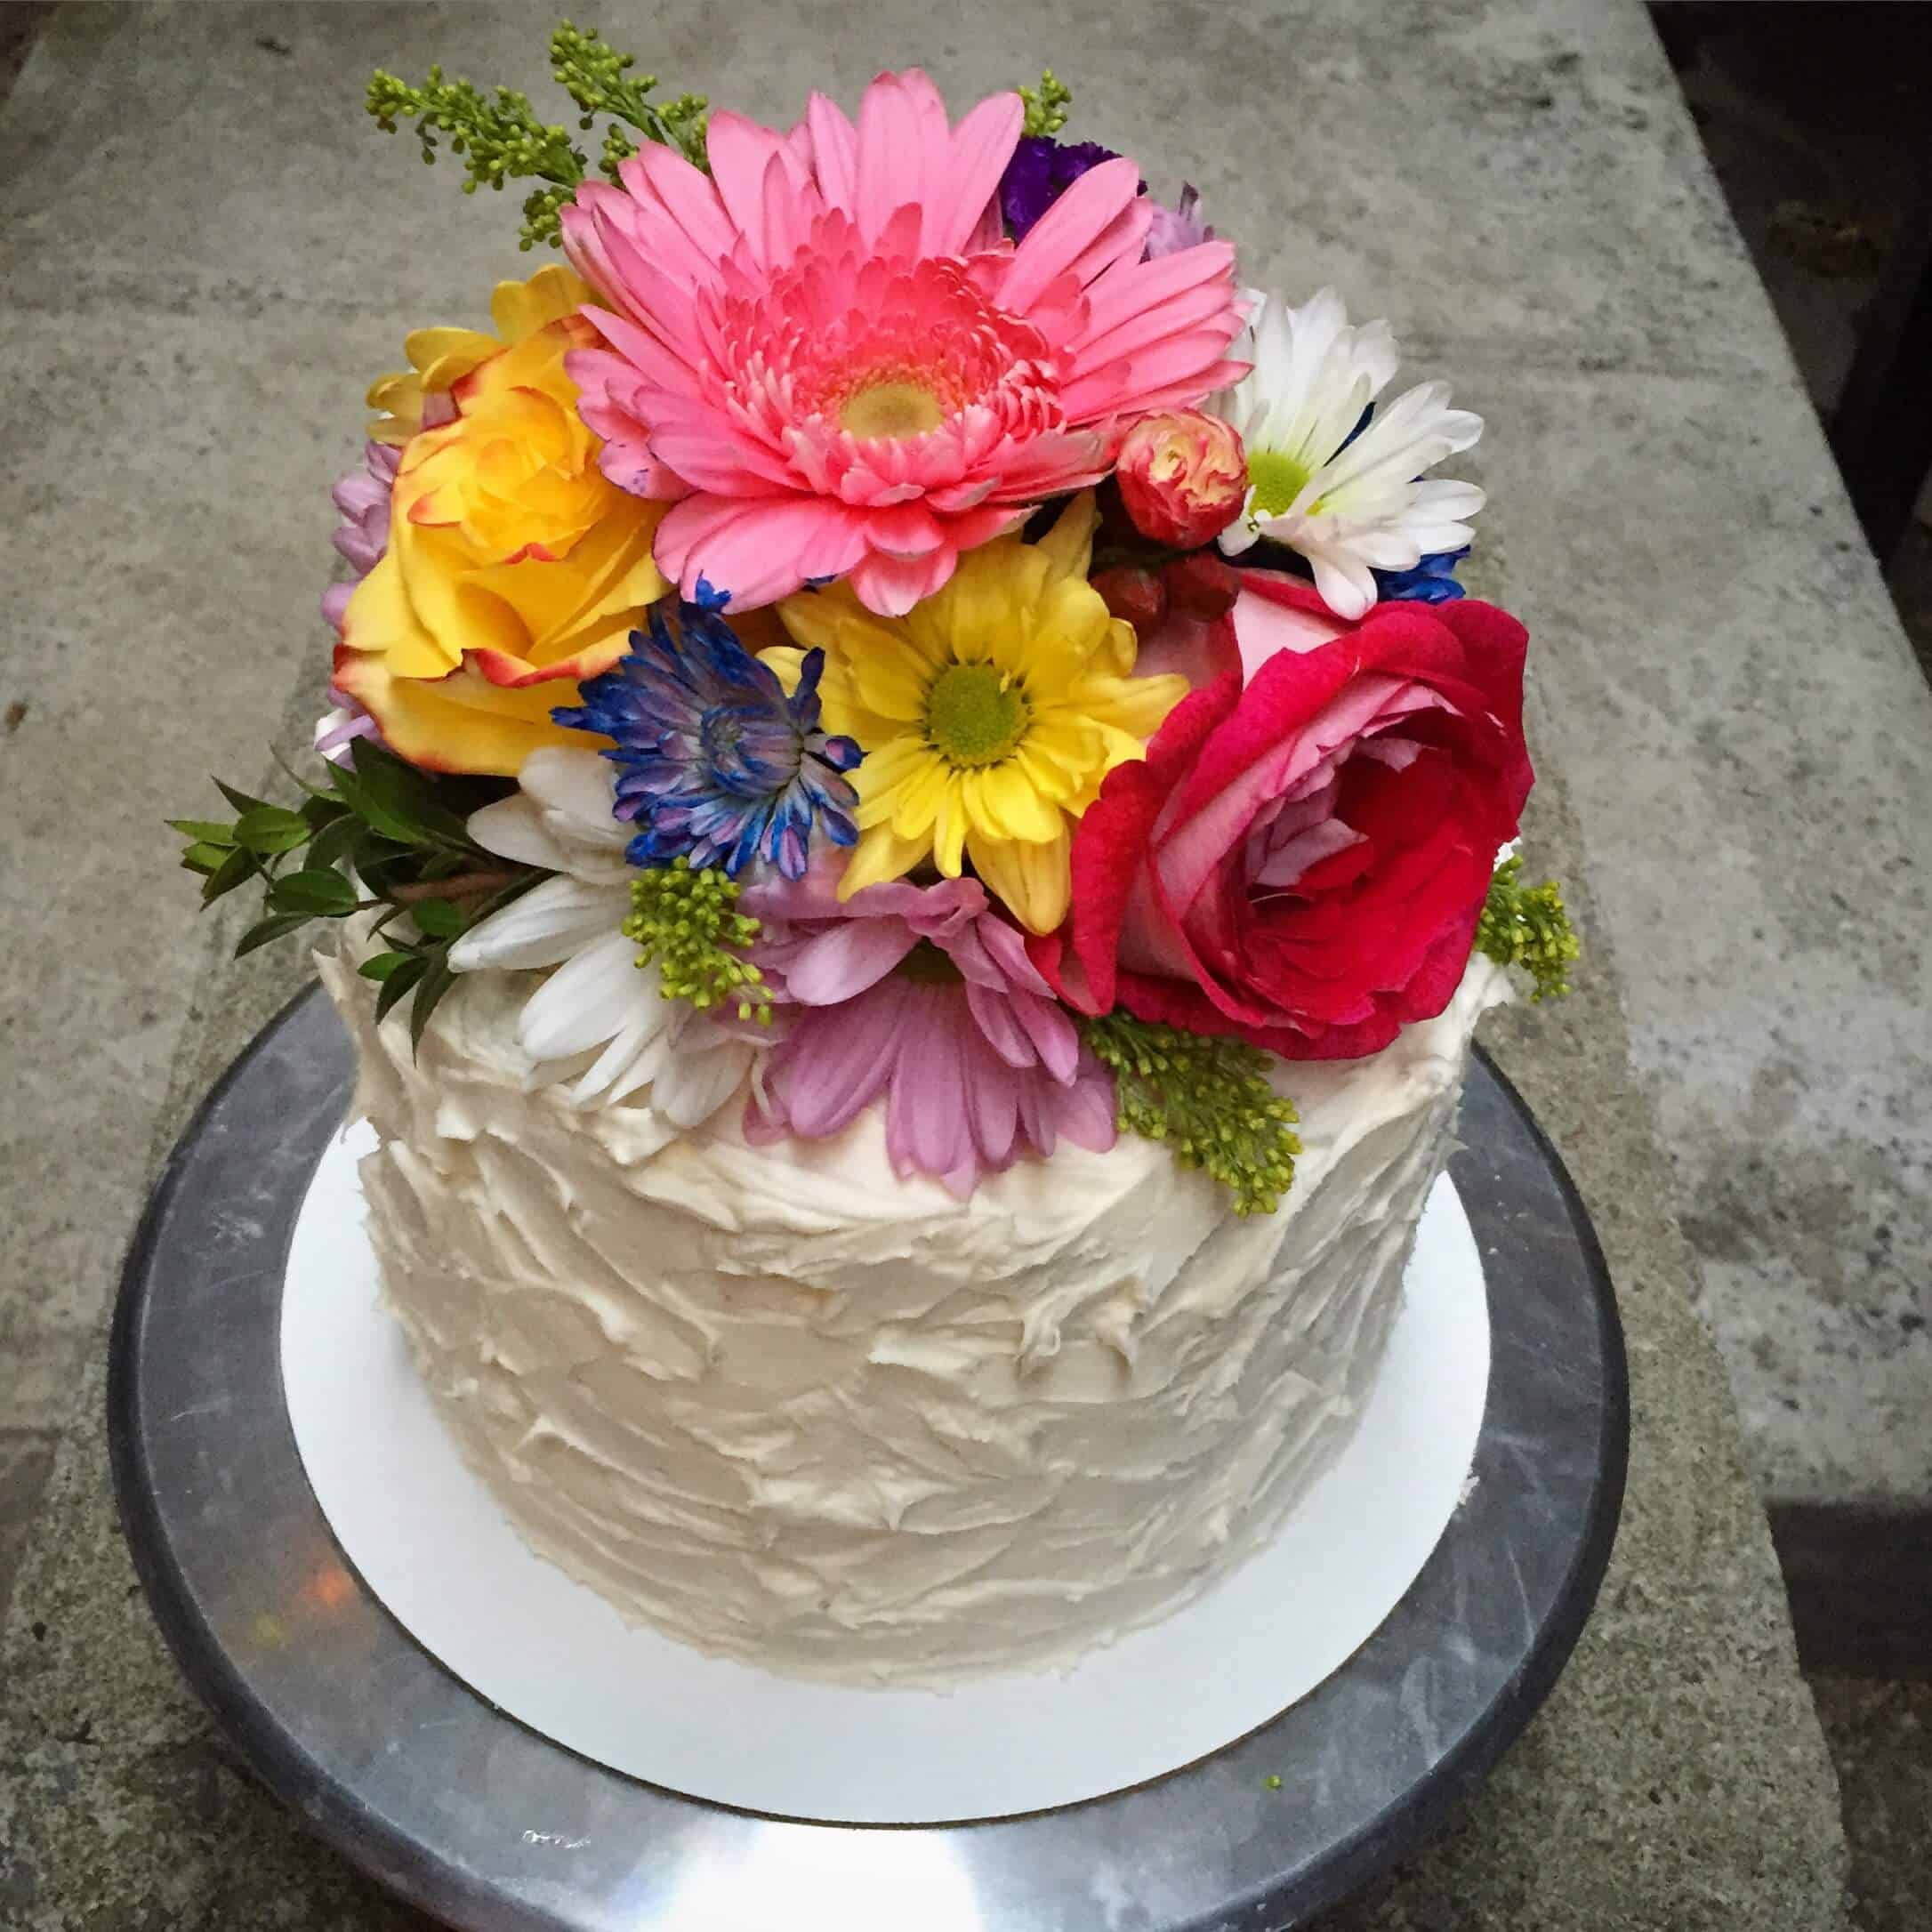 How to put fresh flowers on a cake chelsweets to decorate the top of the cake with flowers gather a beautiful bouquet green floral tap sharp scissors and a thin wire cut the flowers at the top of izmirmasajfo